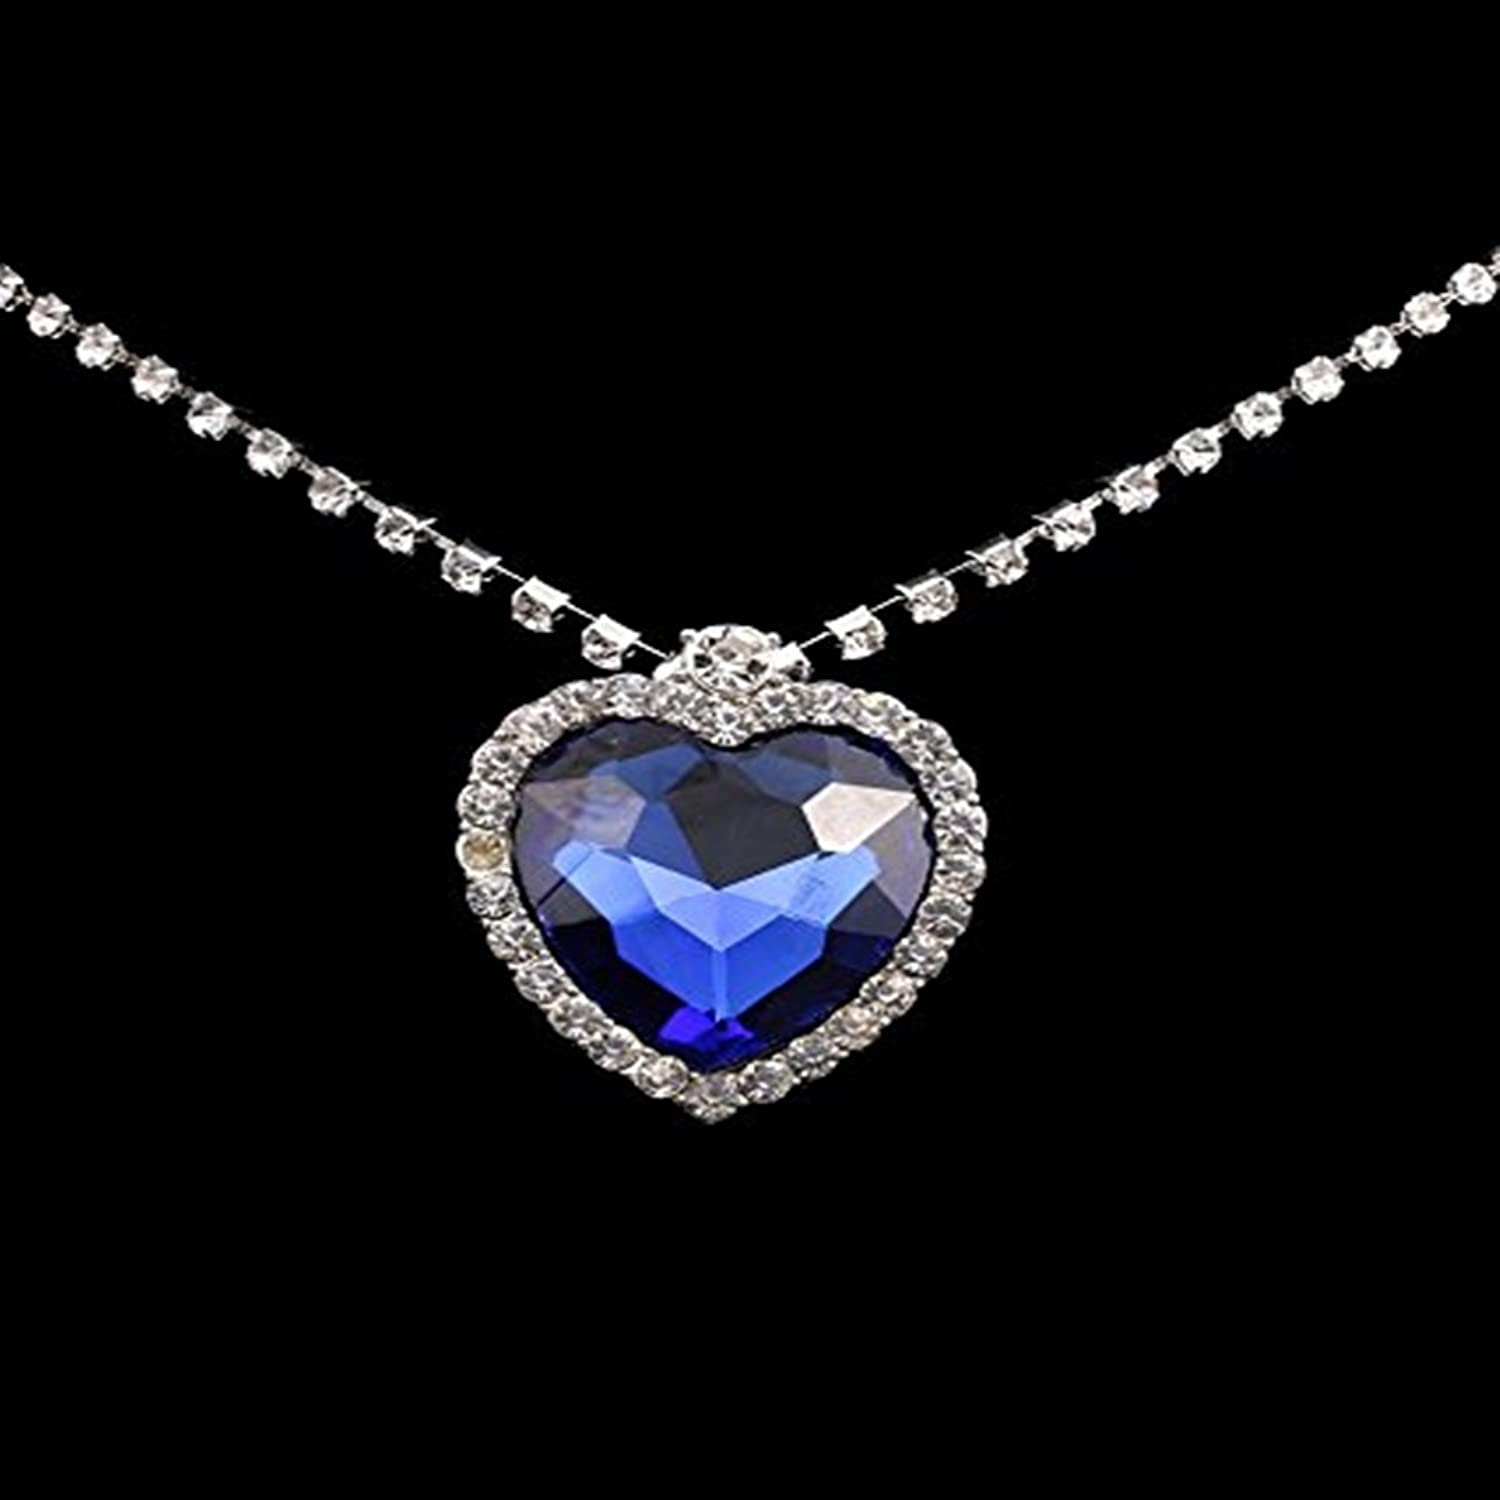 Buy caratcube sapphire blue austrian crystal heart of the ocean buy caratcube sapphire blue austrian crystal heart of the ocean titanic pendant for women ctc 15 online at low prices in india amazon jewellery store mozeypictures Gallery